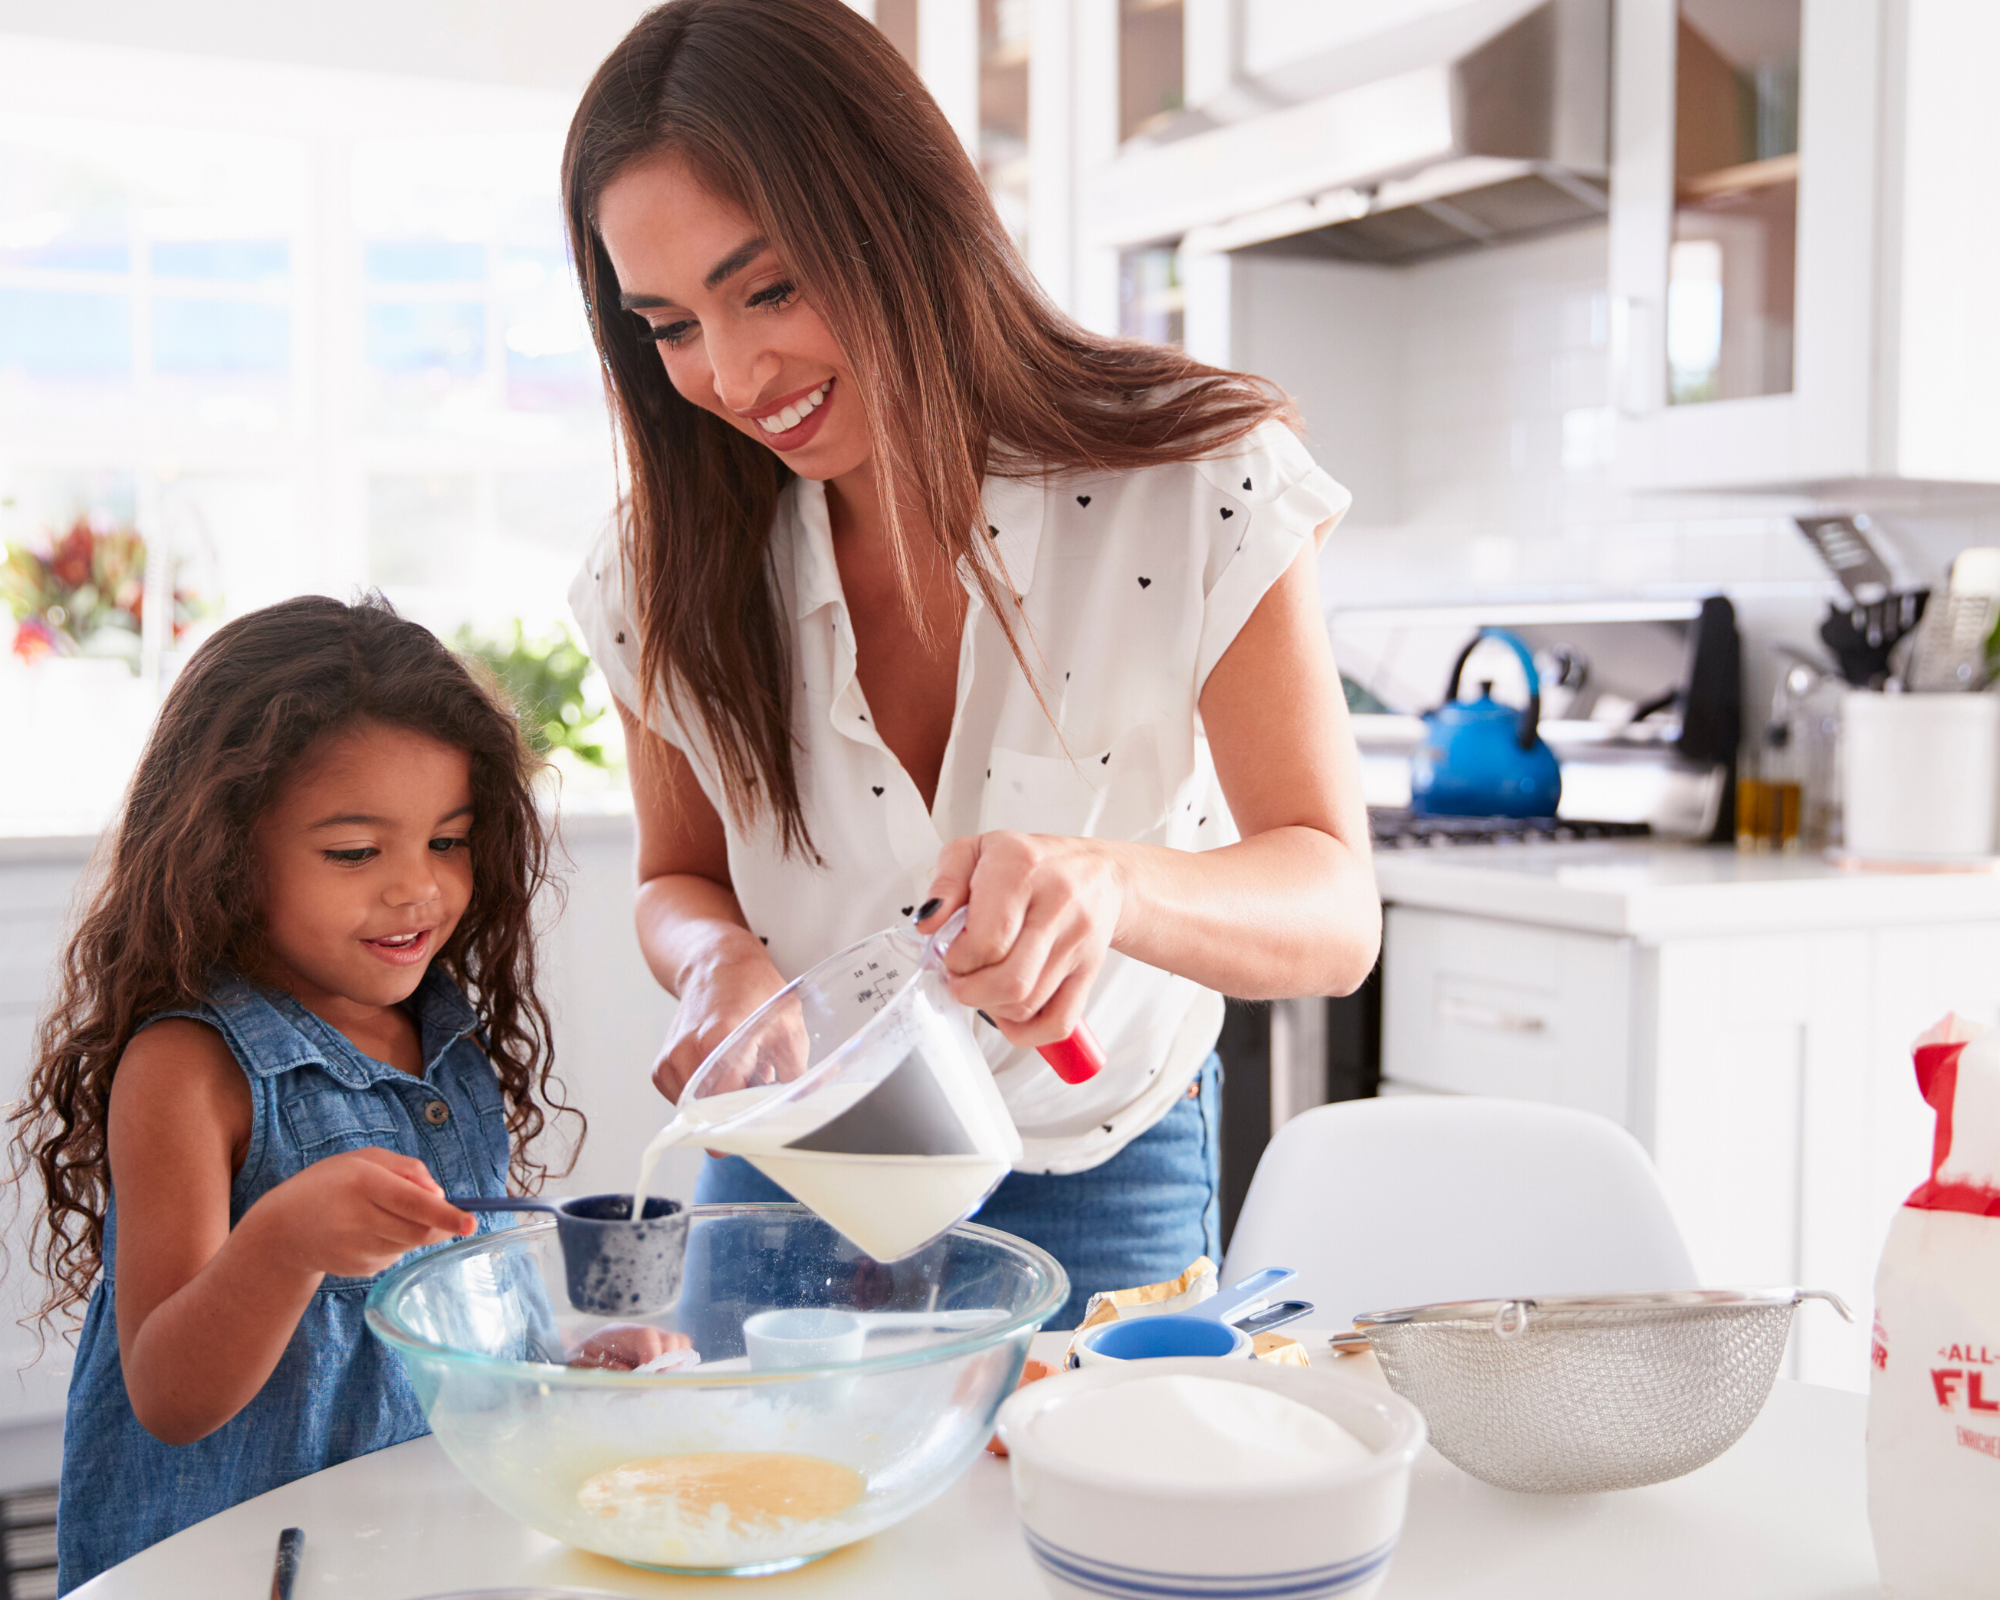 activities for adults and kids - mom and daughter baking